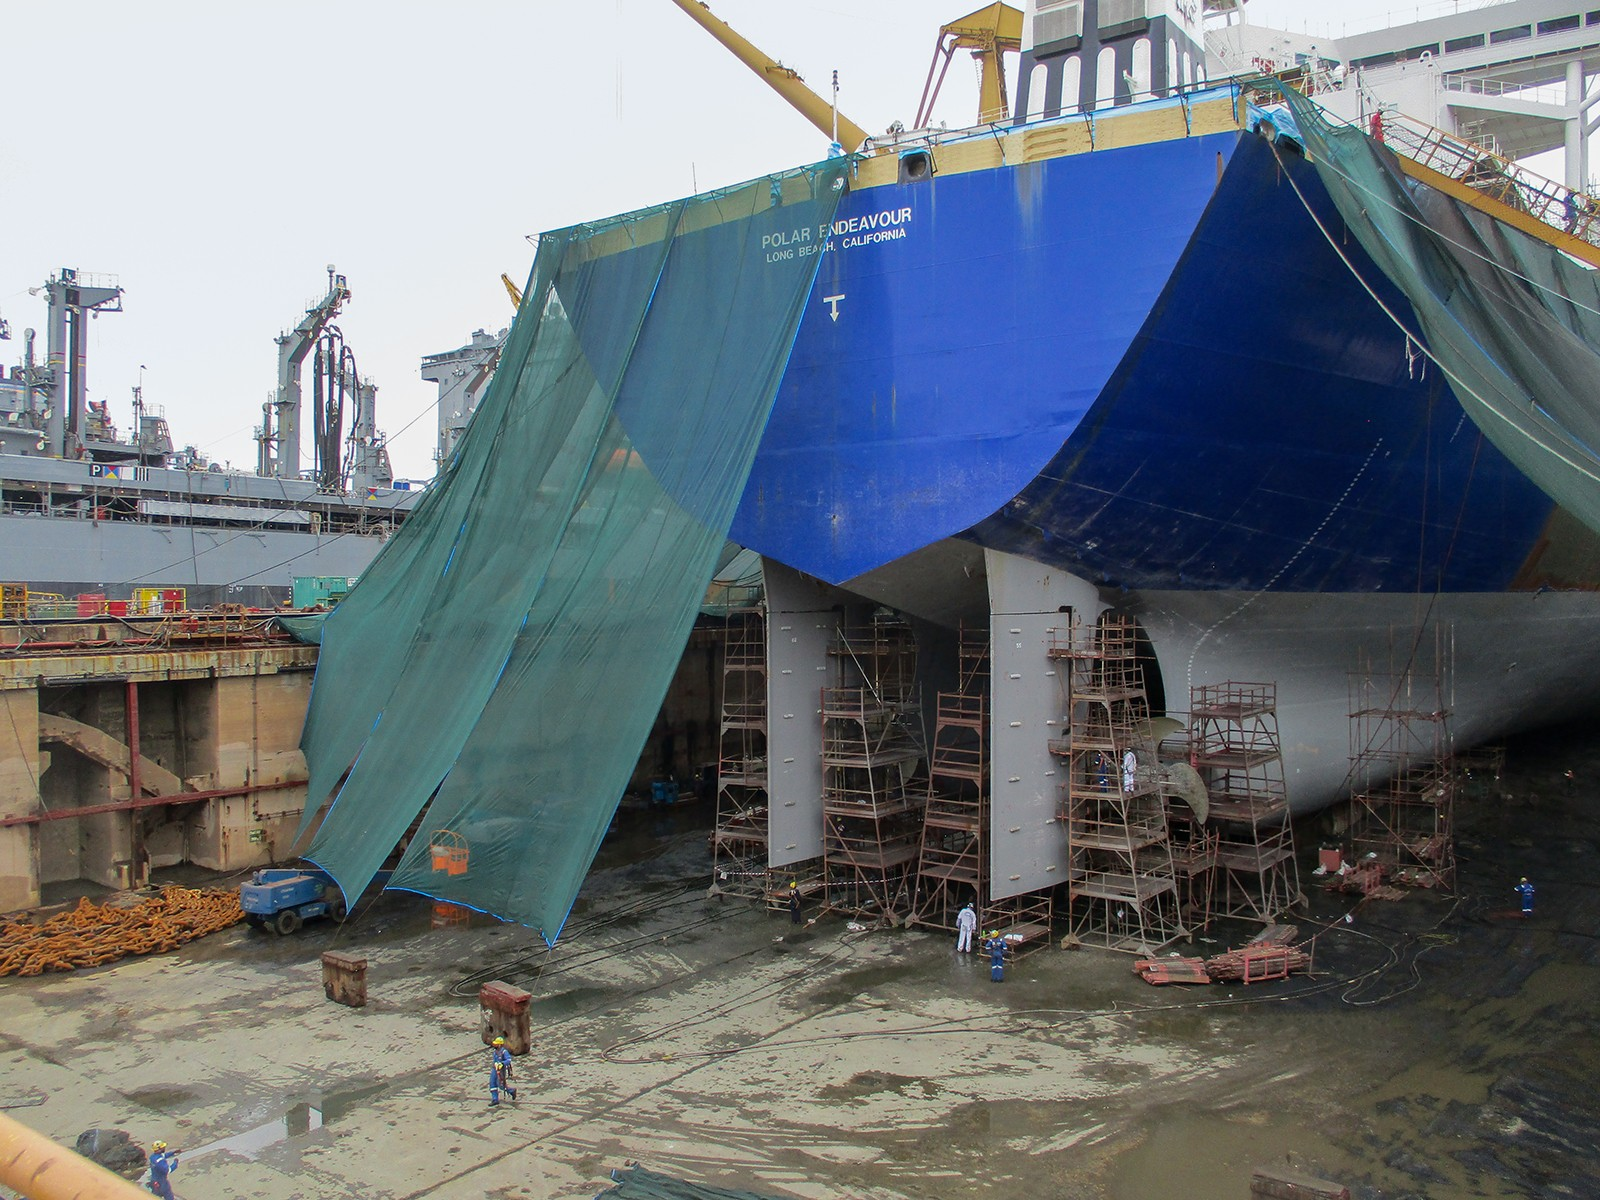 Stern of ship with scaffolding underneath